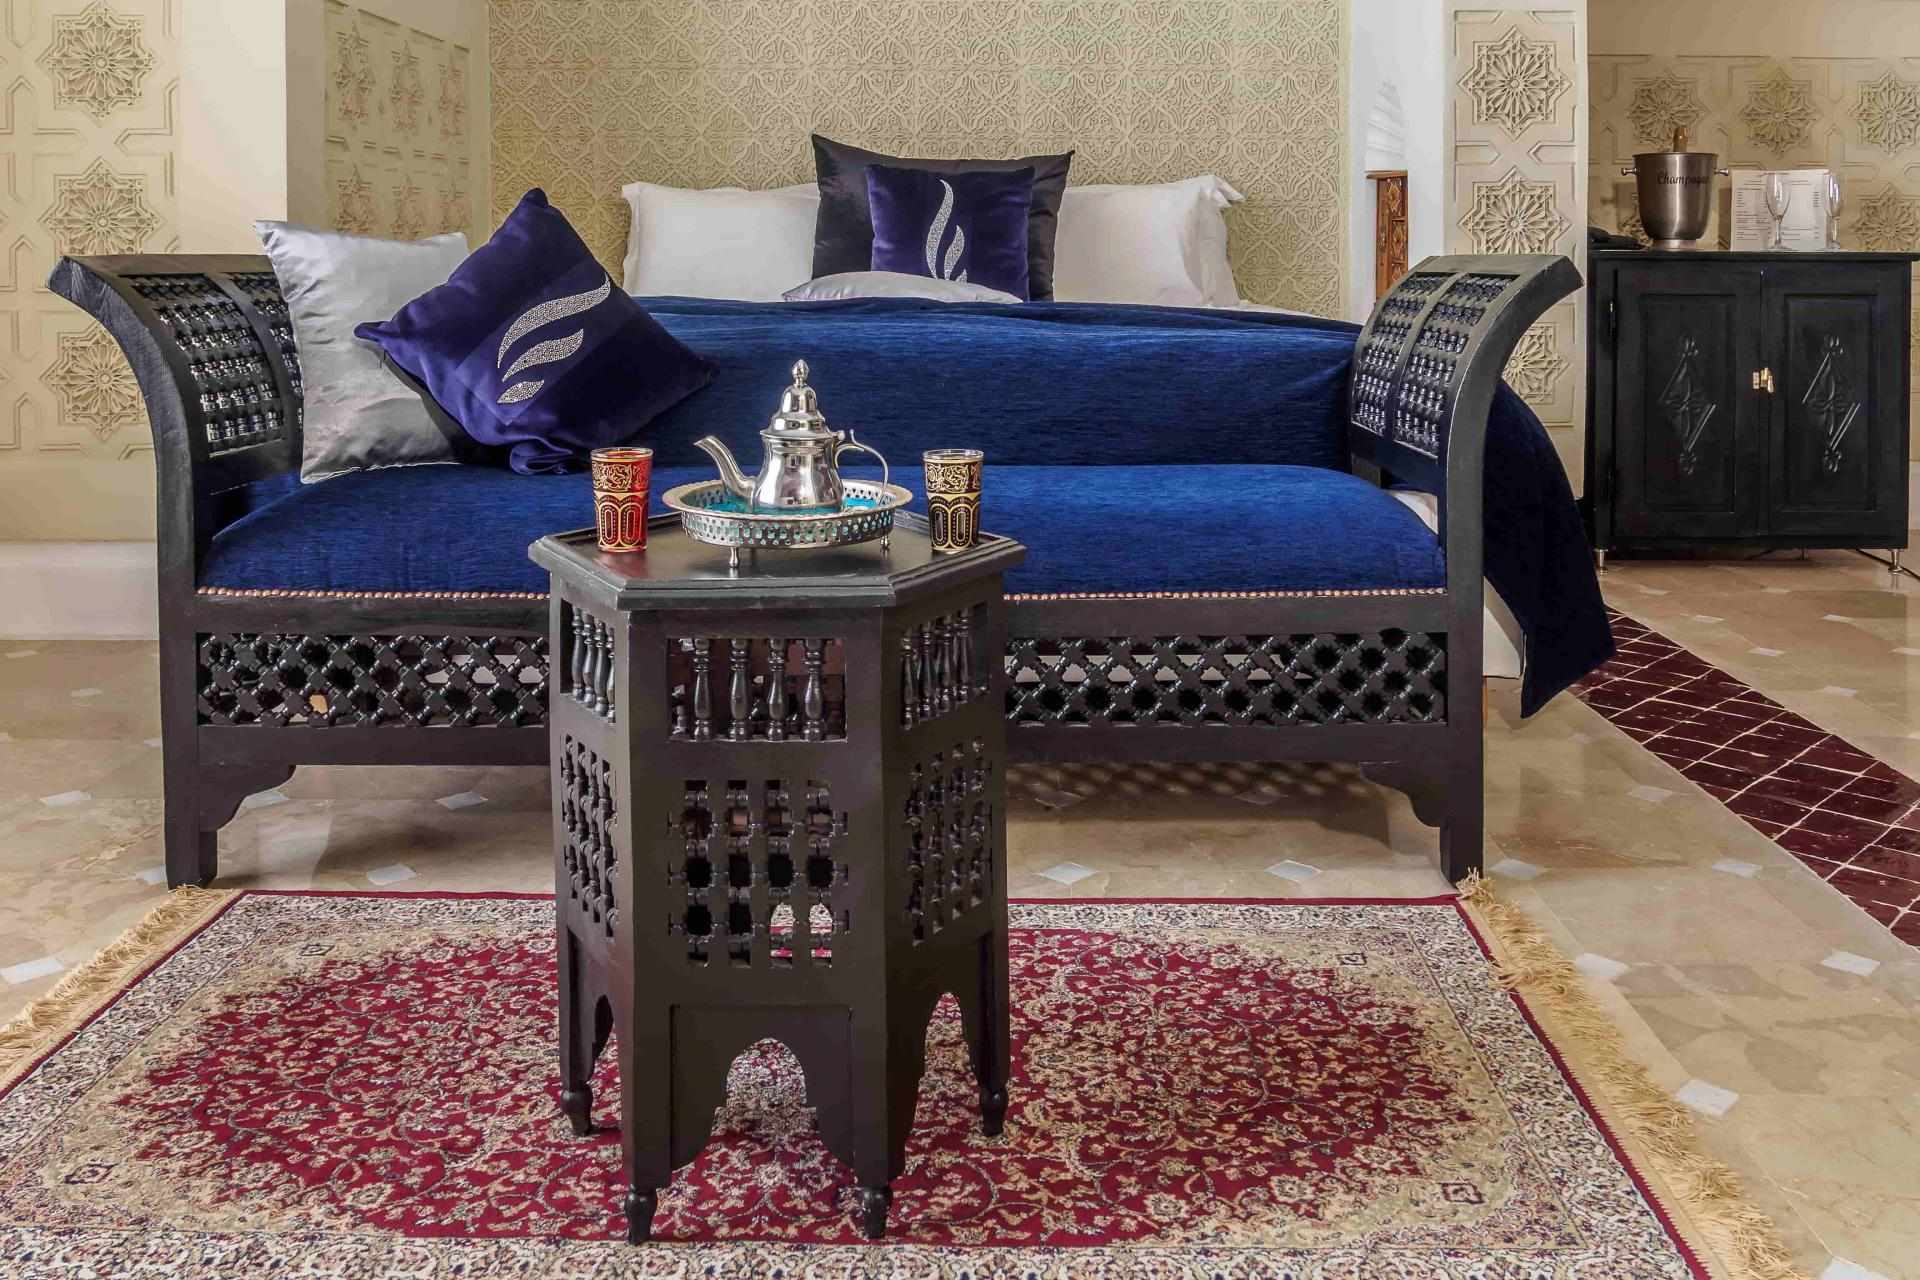 Rhythm of the Home & 9 Exotic Ways to Embrace the Moroccan Decor - Rhythm of the Home